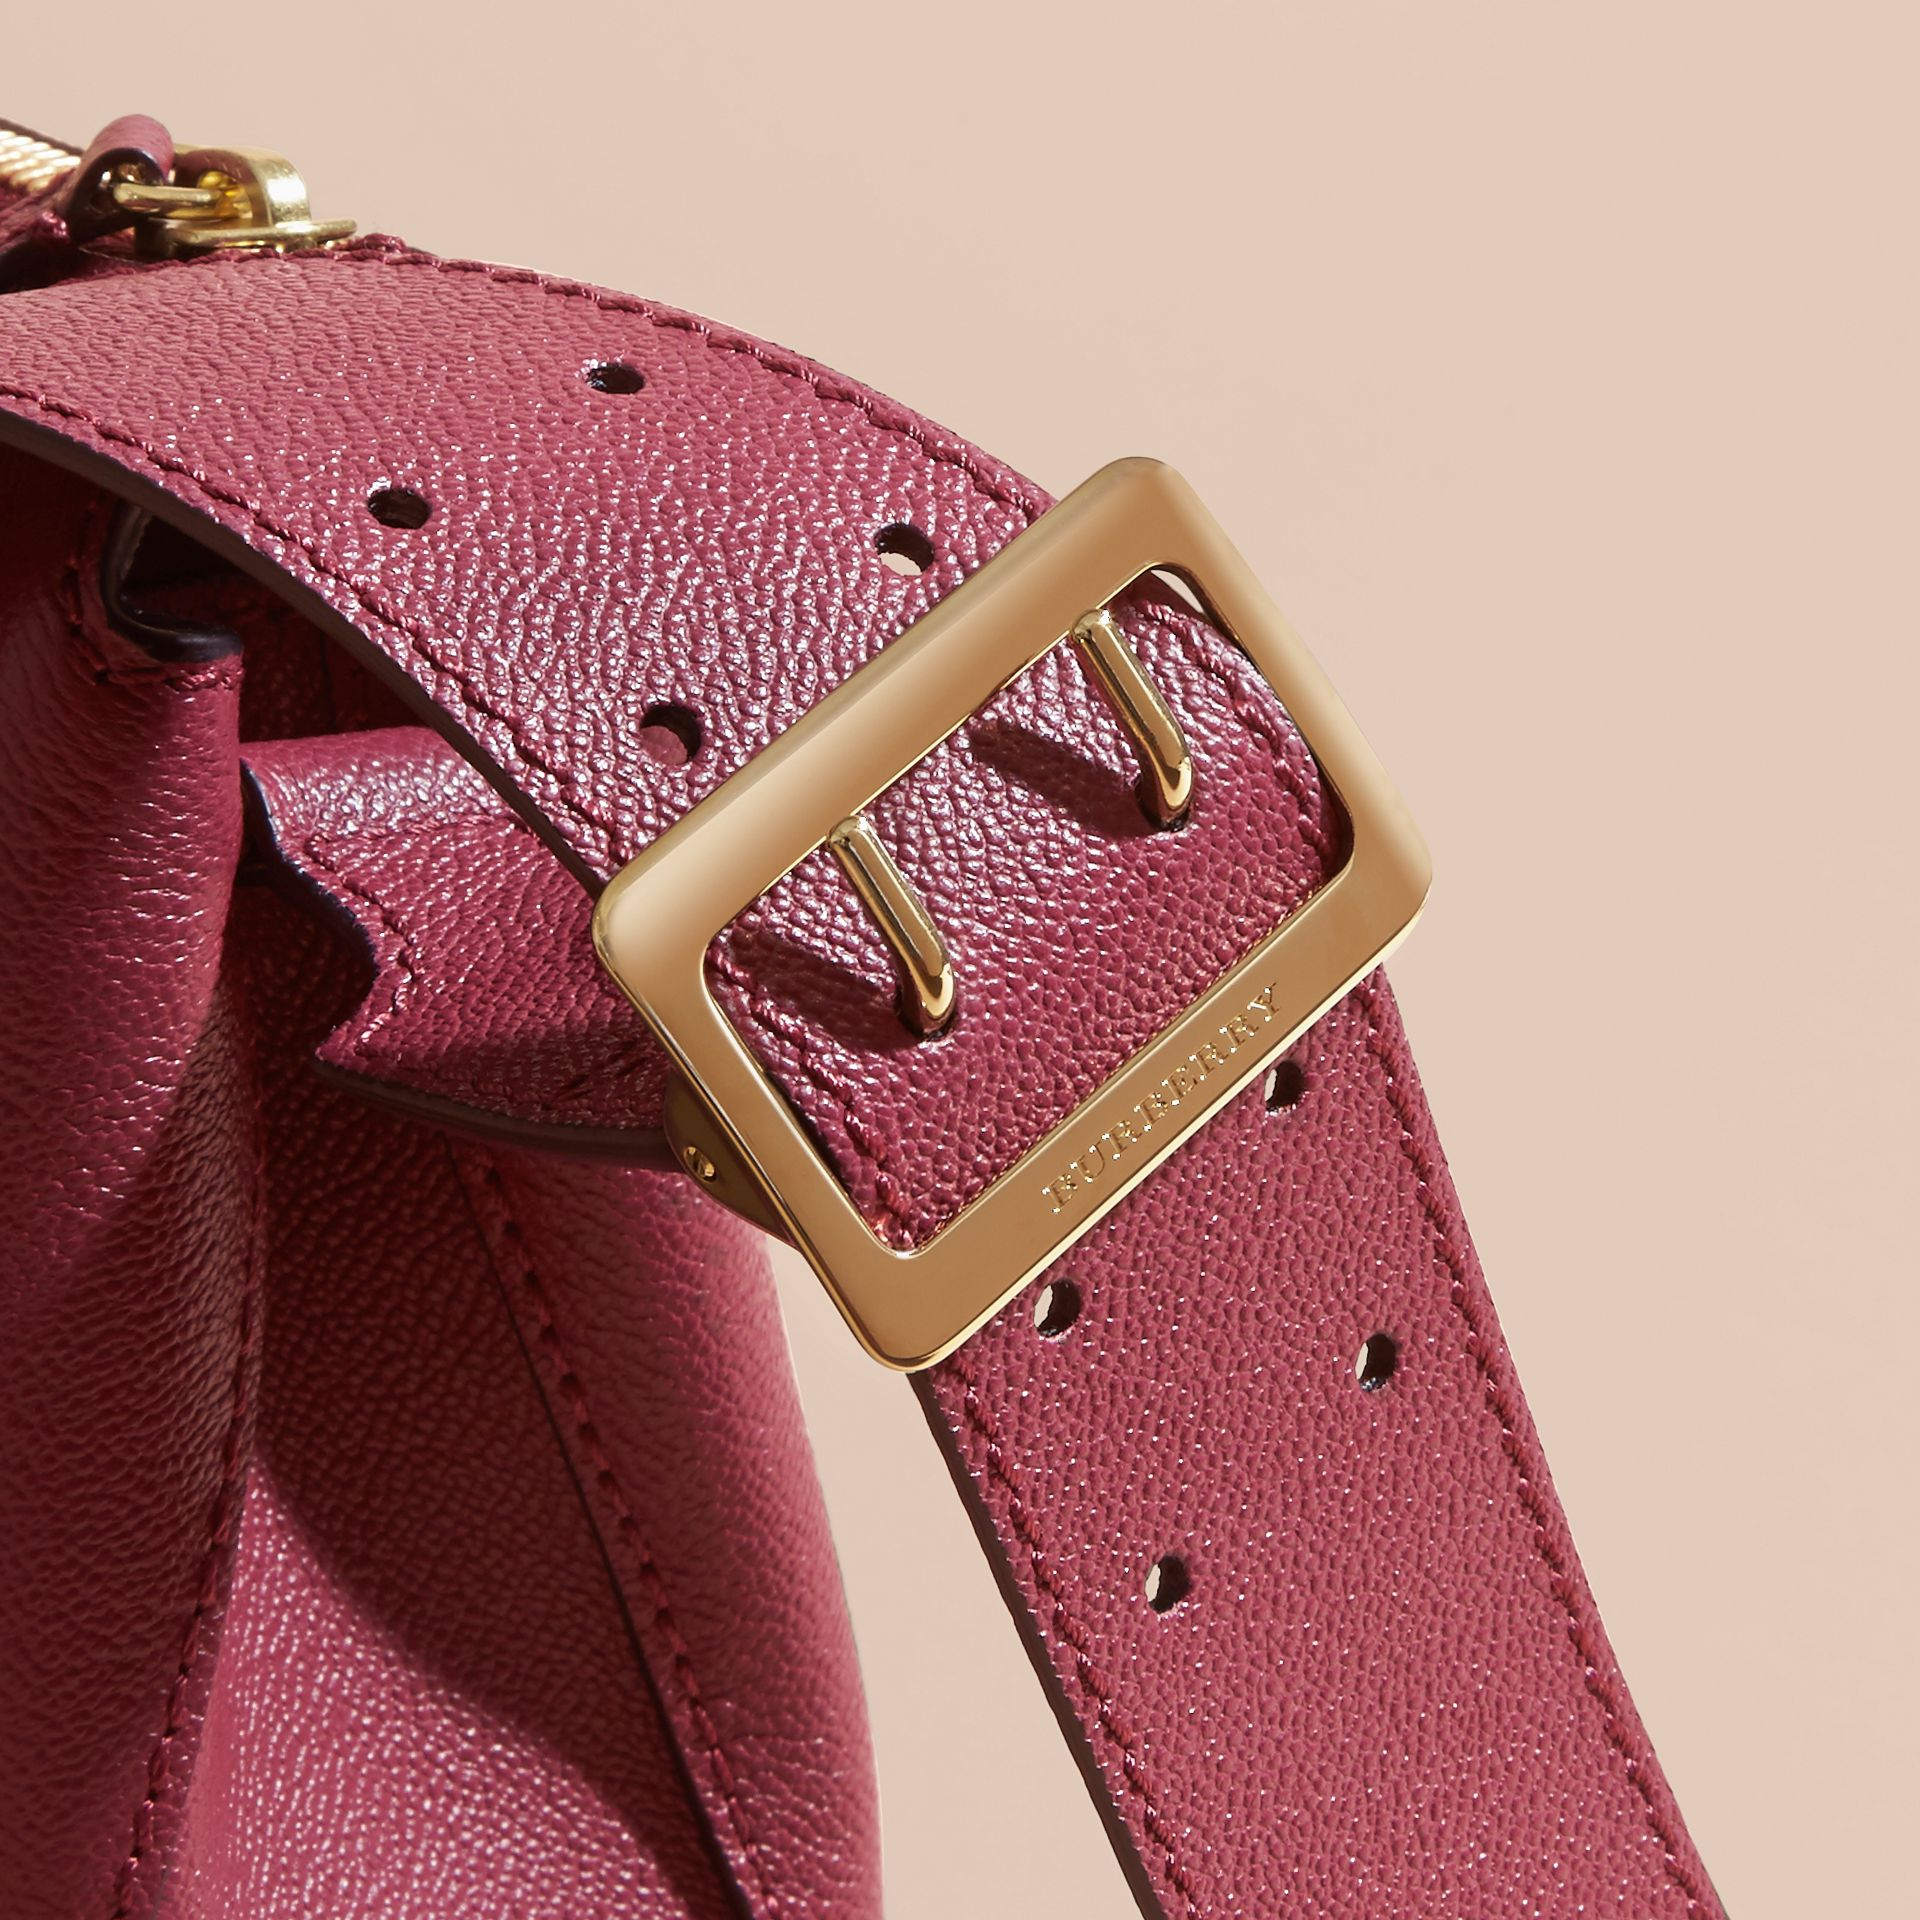 Buckle Detail Leather Crossbody Bag Dark Plum - gallery image 2